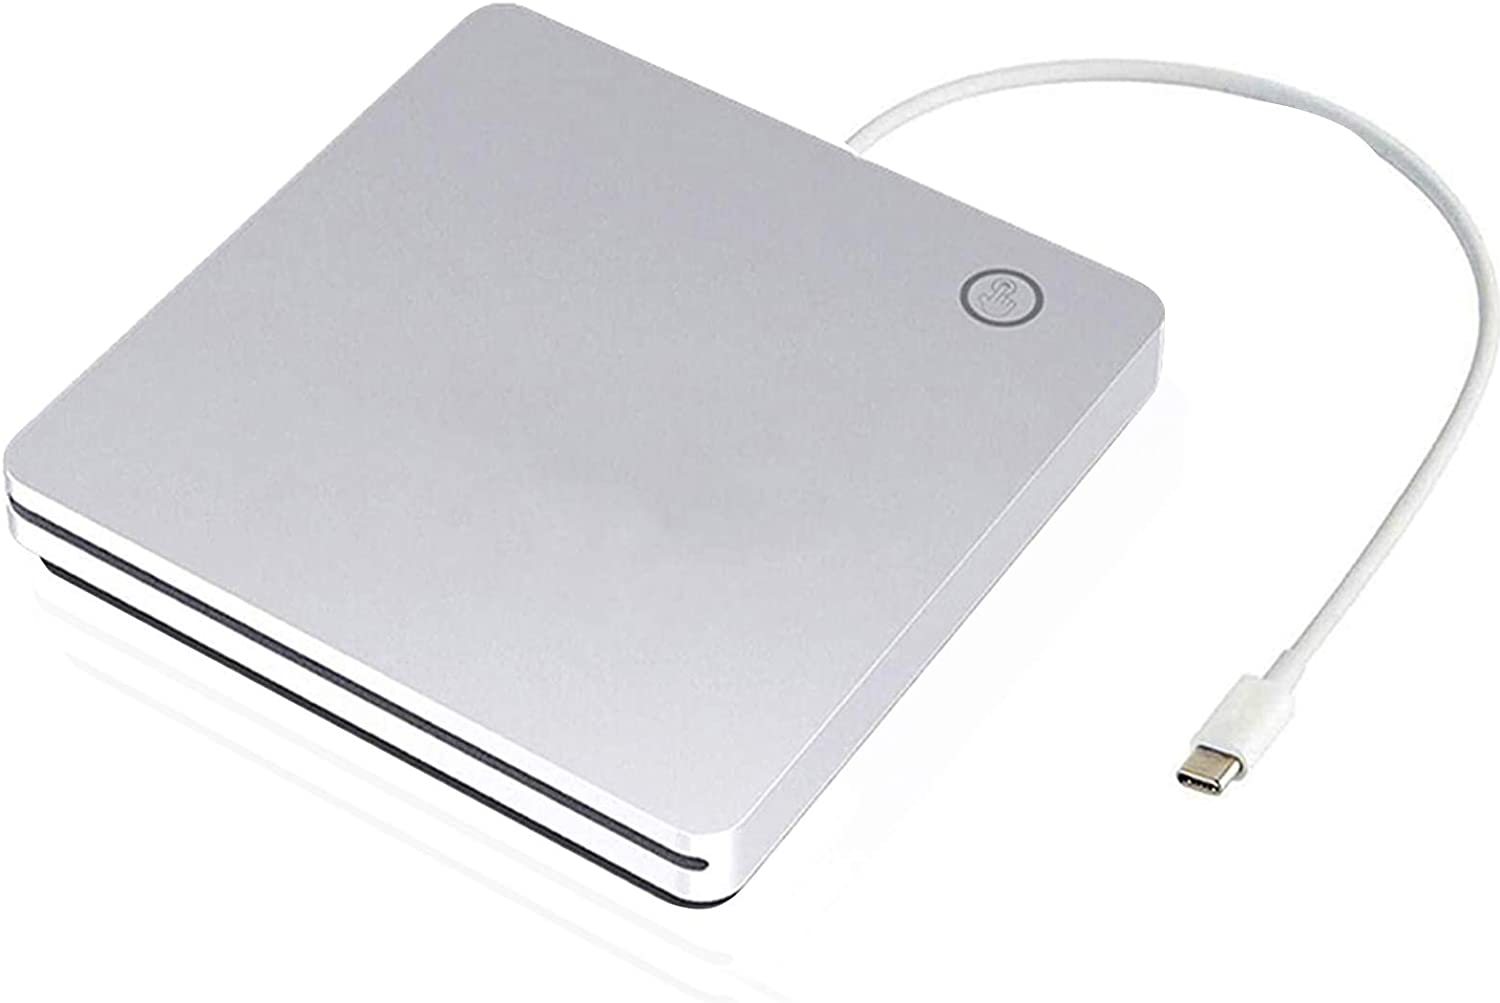 Ploveyy USB C Superdrive External DVD CD Drive DVD/CD +/-RW ROM Player Burner Writer Drive,Compatible with Windows 10 8 7 XP Vista Mac OS System for Mac Book Pro Air/Laptop/Desktop (Silver)